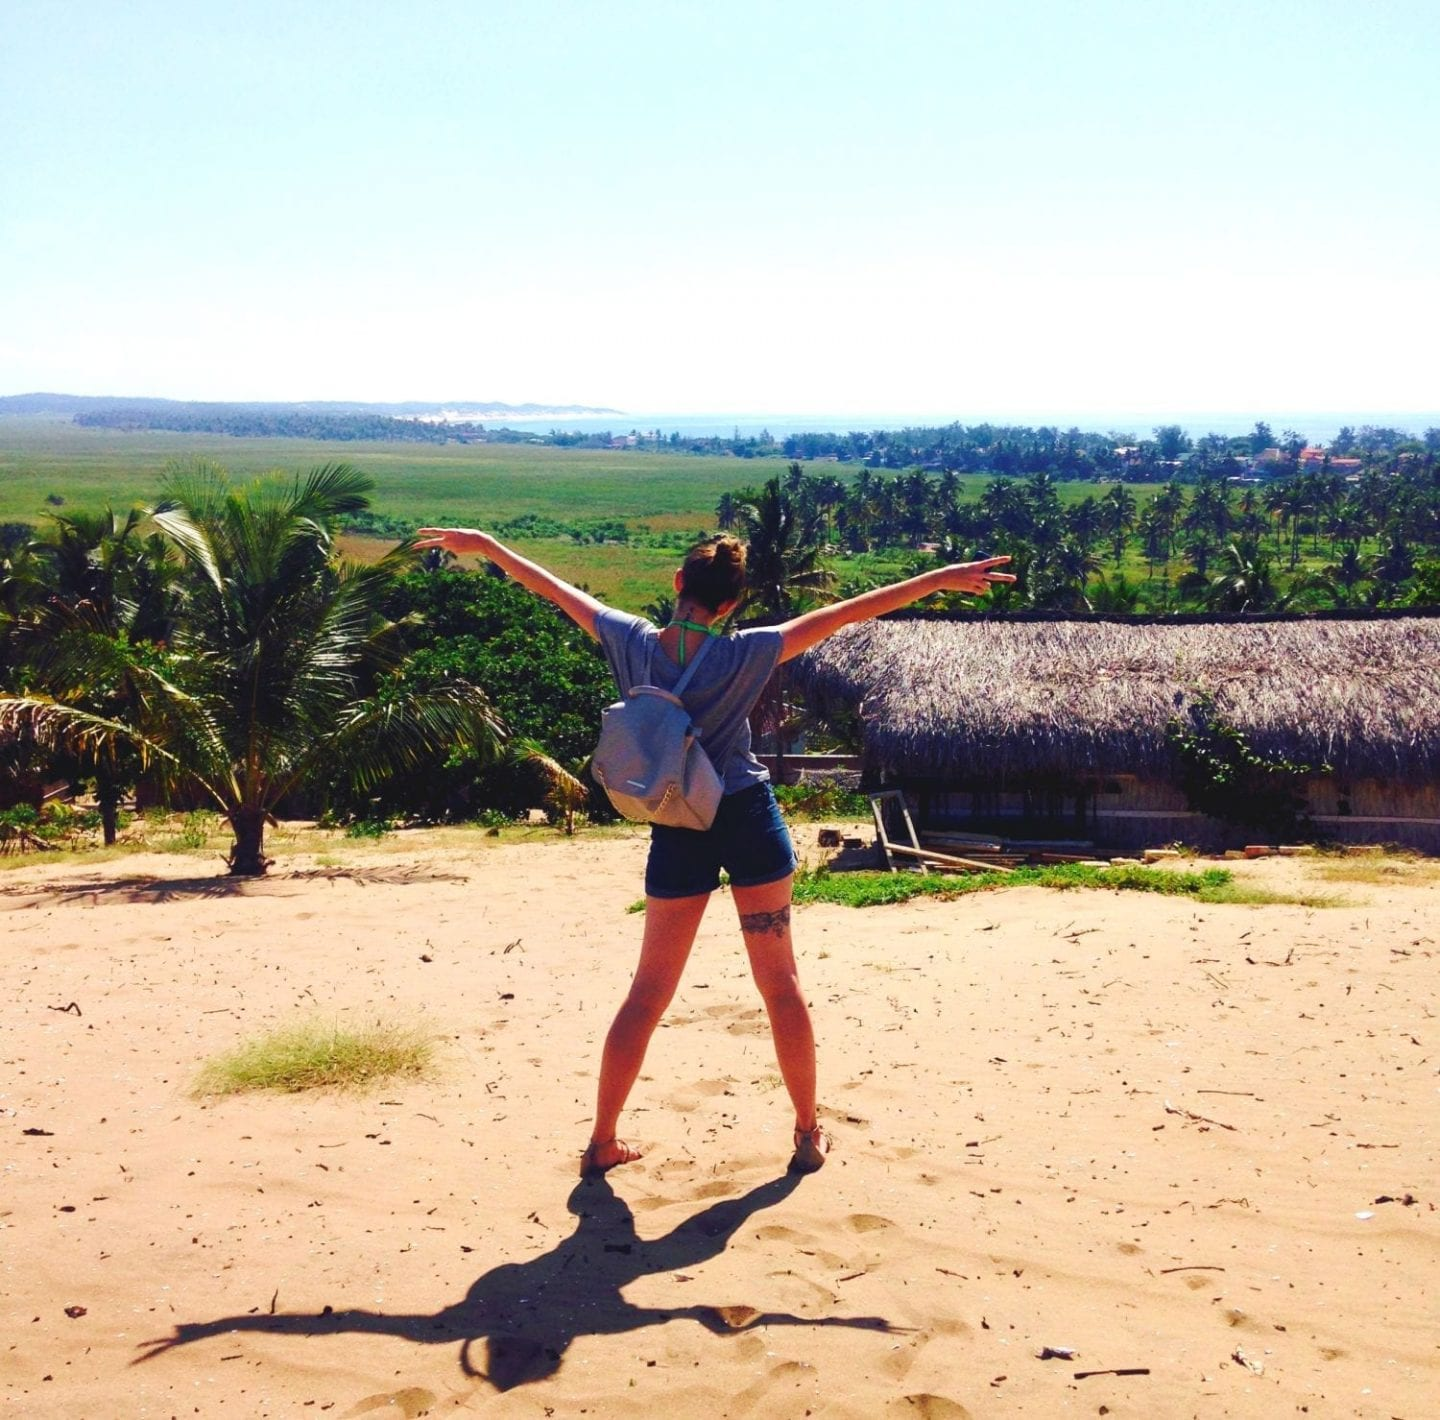 How to Travel to Mozambique on a Budget from South Africa | Want to travel to Mozambique on a budget? It's one of the cheapest destinations for South Africans. Here's how I spent 10 days in Tofo for less than R 6 000.00 | #africa #africatravel #mozambique #budgettravel #backpacking